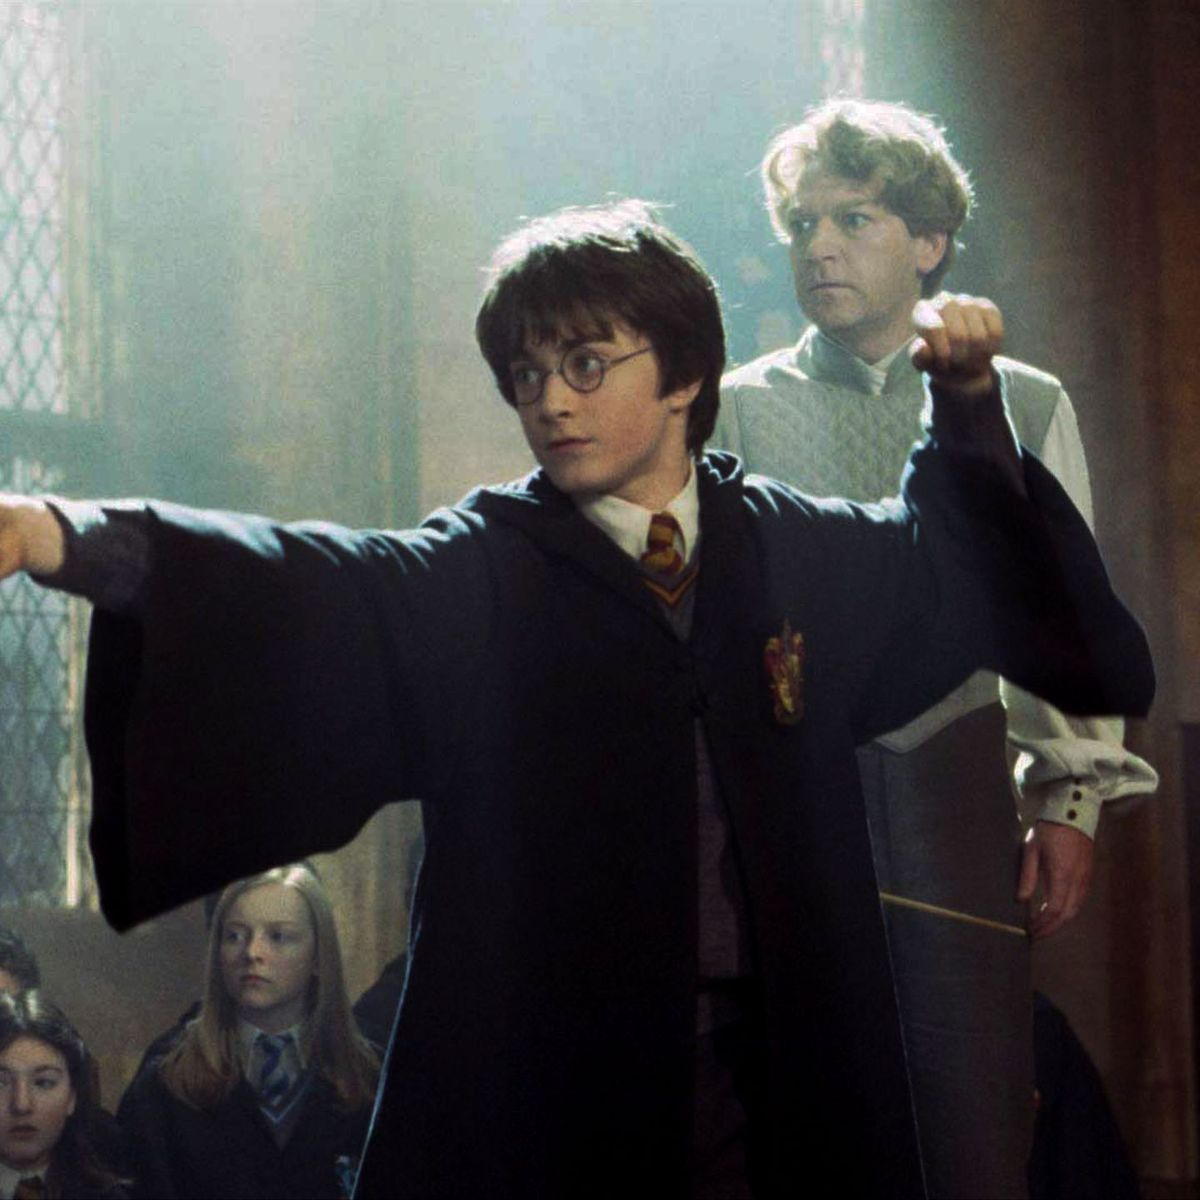 A Harry Potter TV Series Might Come to HBO Max